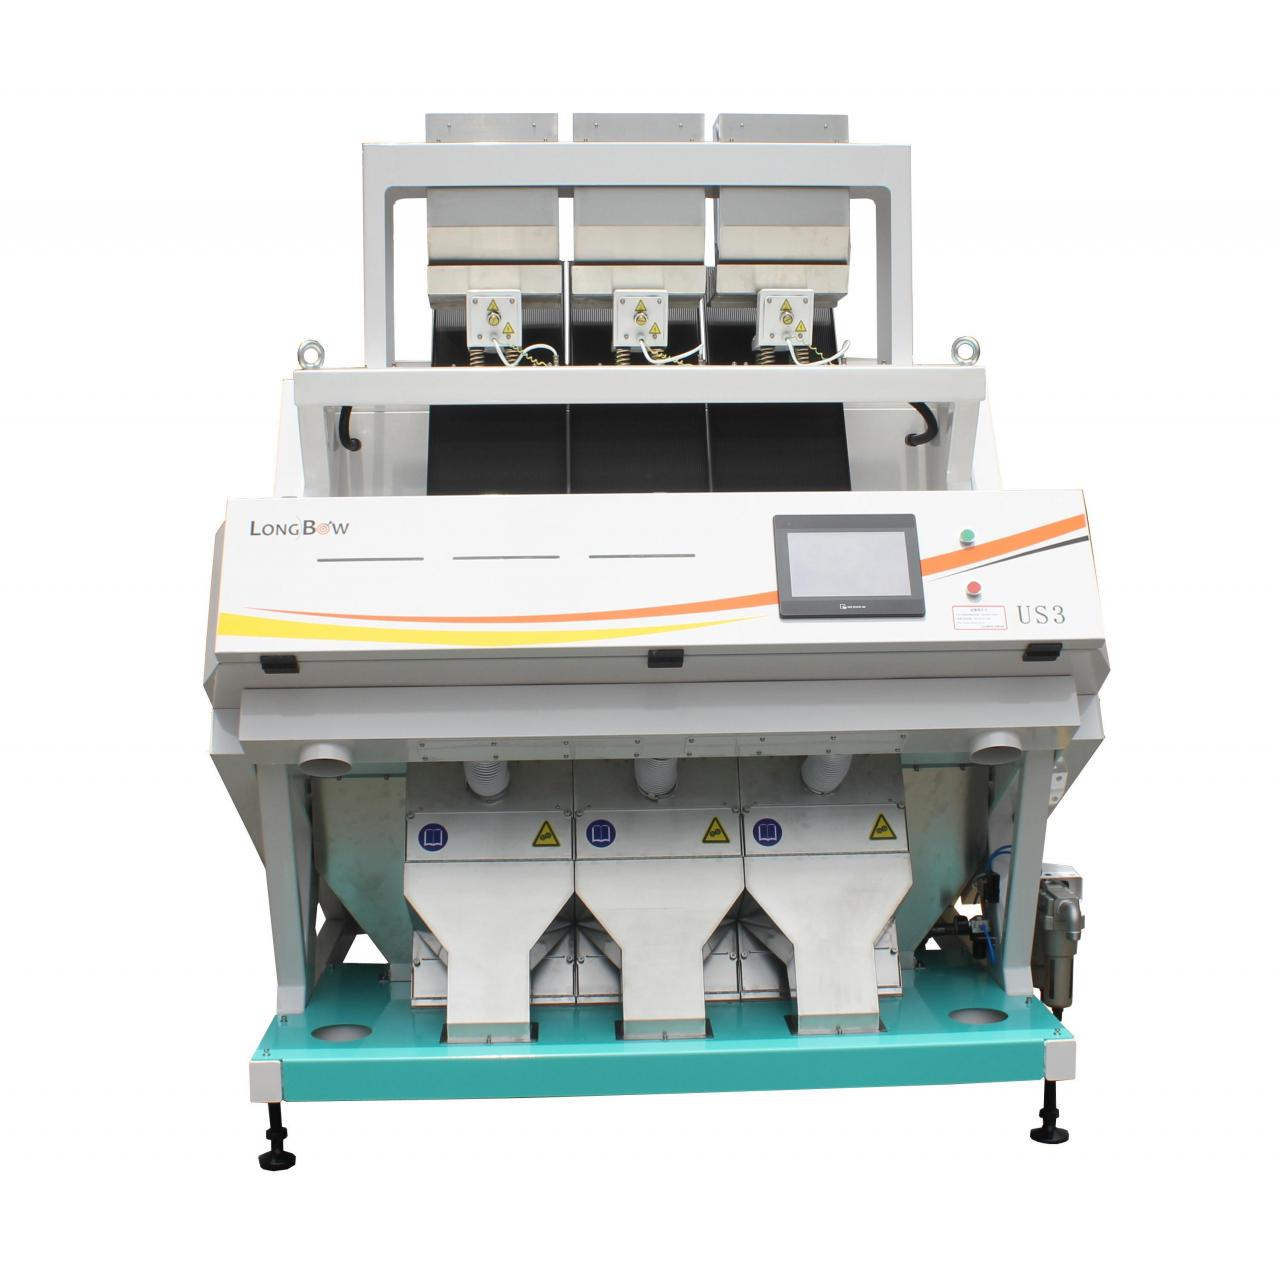 US3 Rice Color Sorter